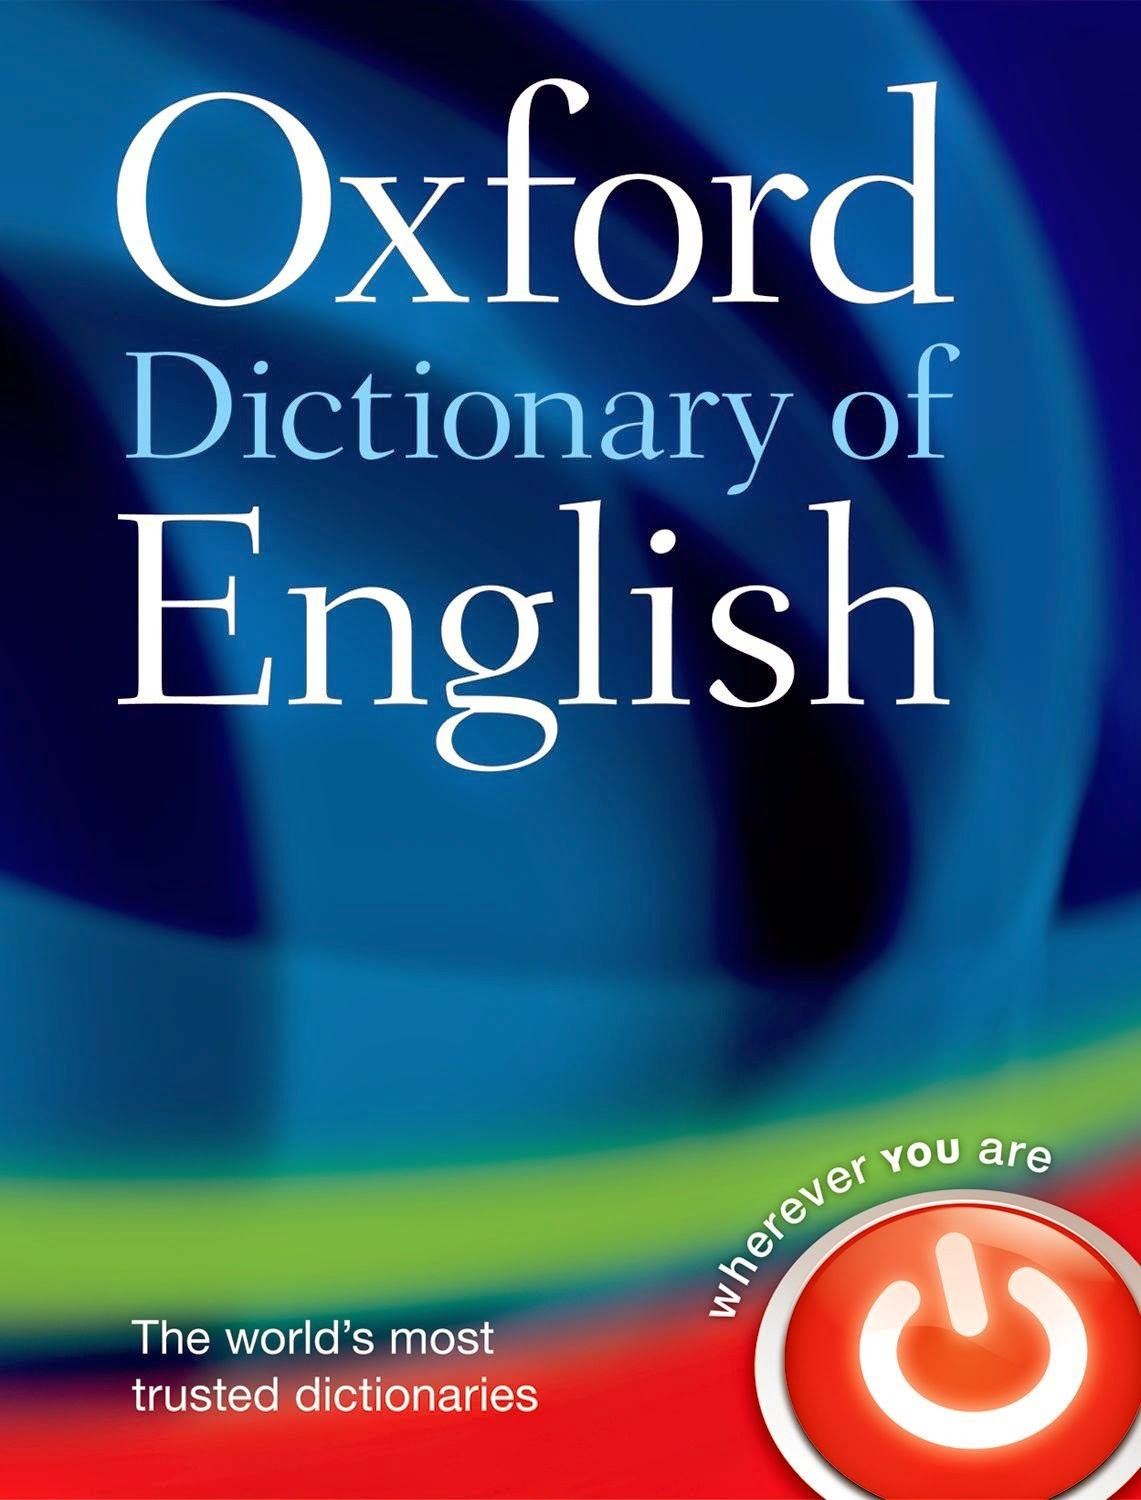 Download Oxford Dictionary 2017 Software Full Free